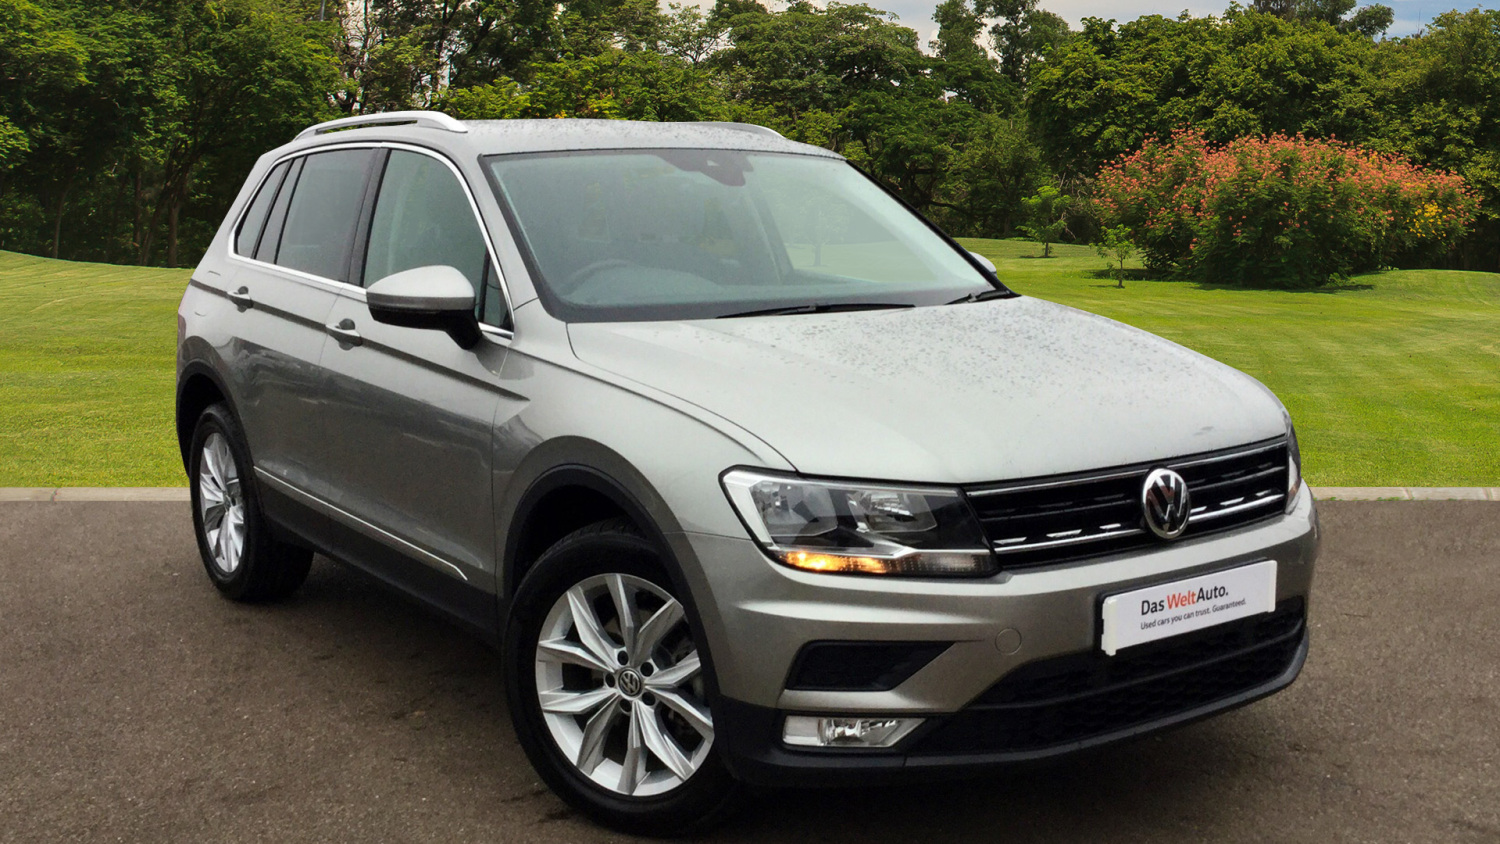 used volkswagen tiguan 2 0 tdi bmt 150 4motion se nav 5dr diesel estate for sale in scotland. Black Bedroom Furniture Sets. Home Design Ideas